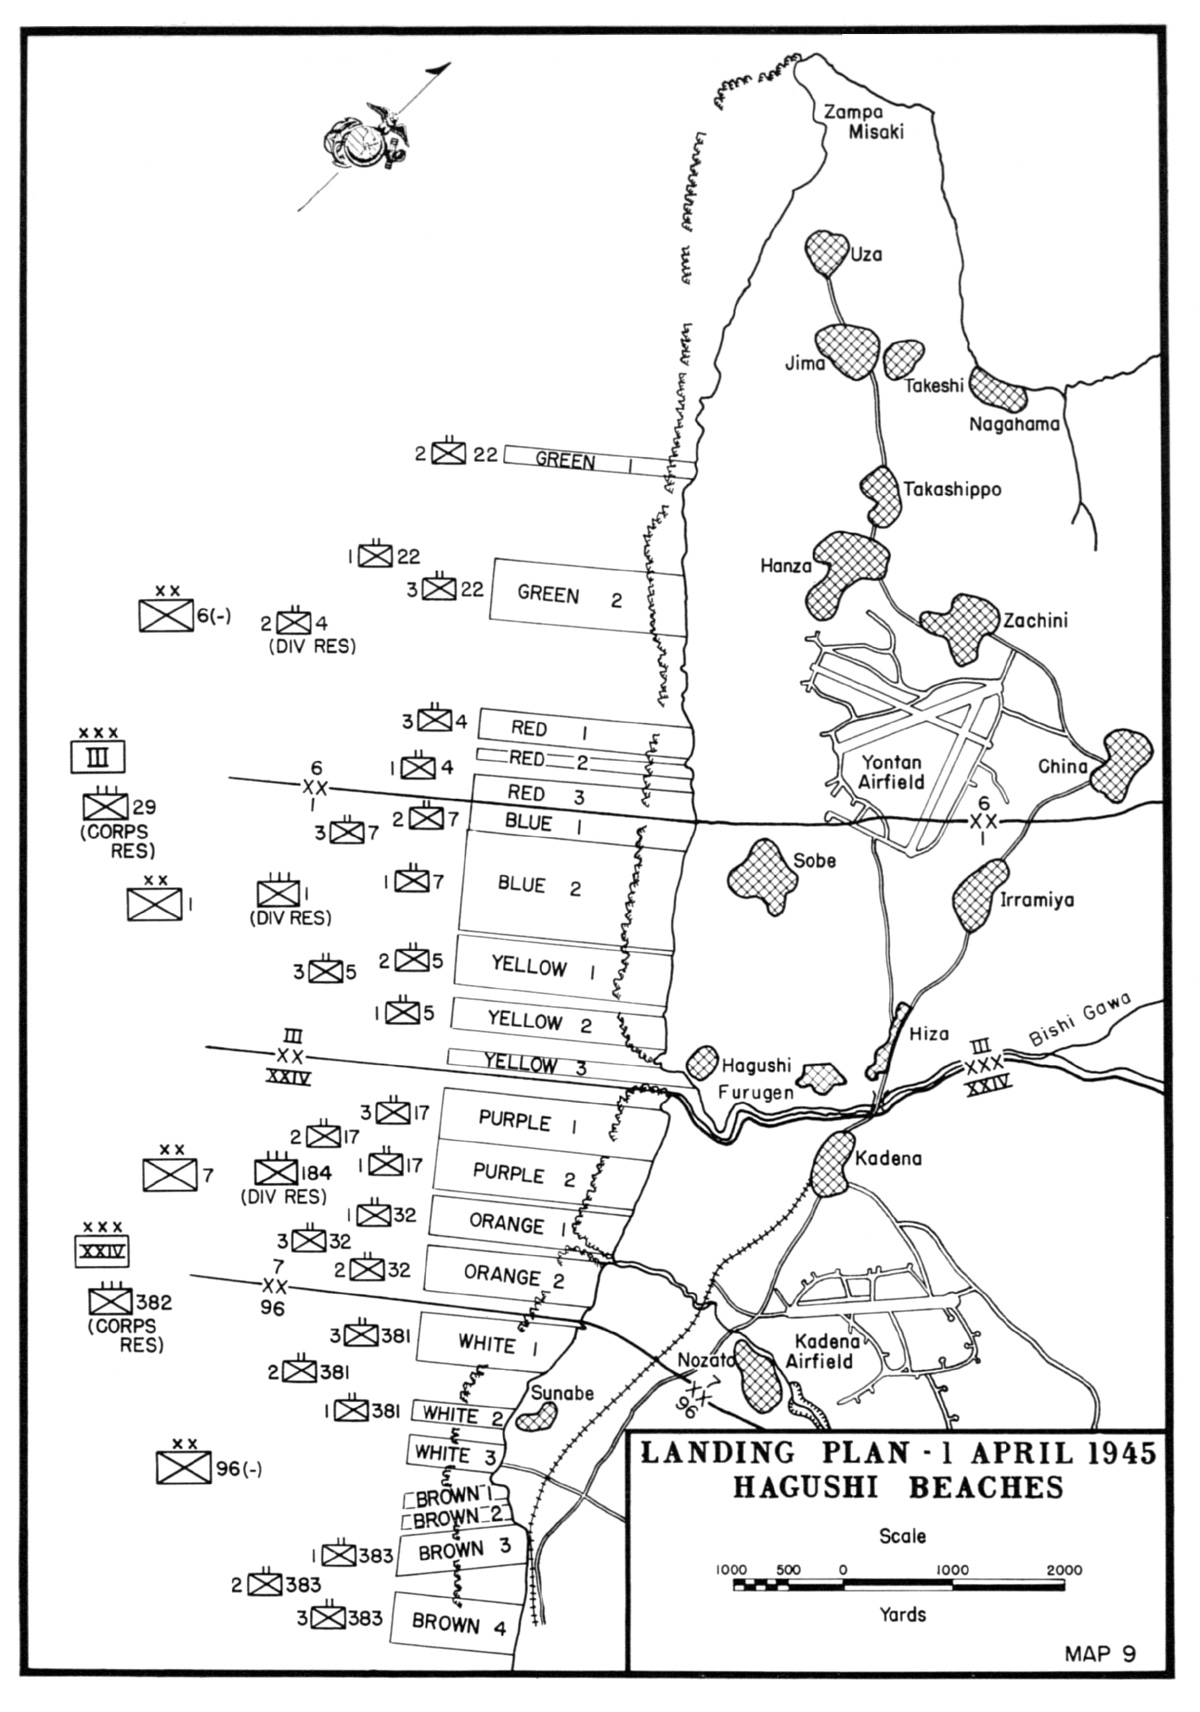 Map Map Of Landing Beaches On Okinawa Japan 1 Apr